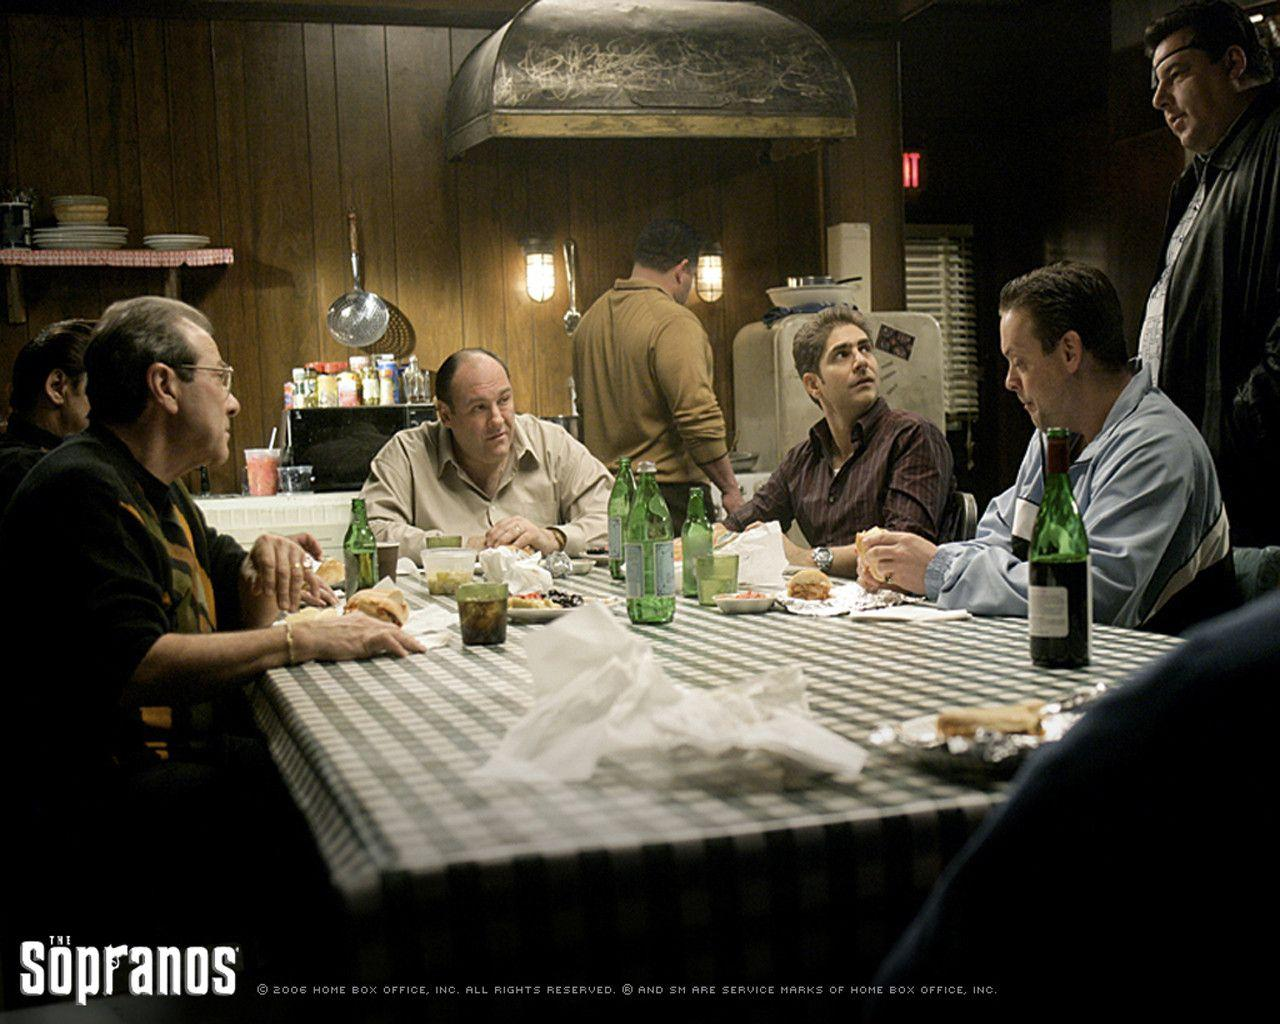 The Sopranos new Windows backgrounds